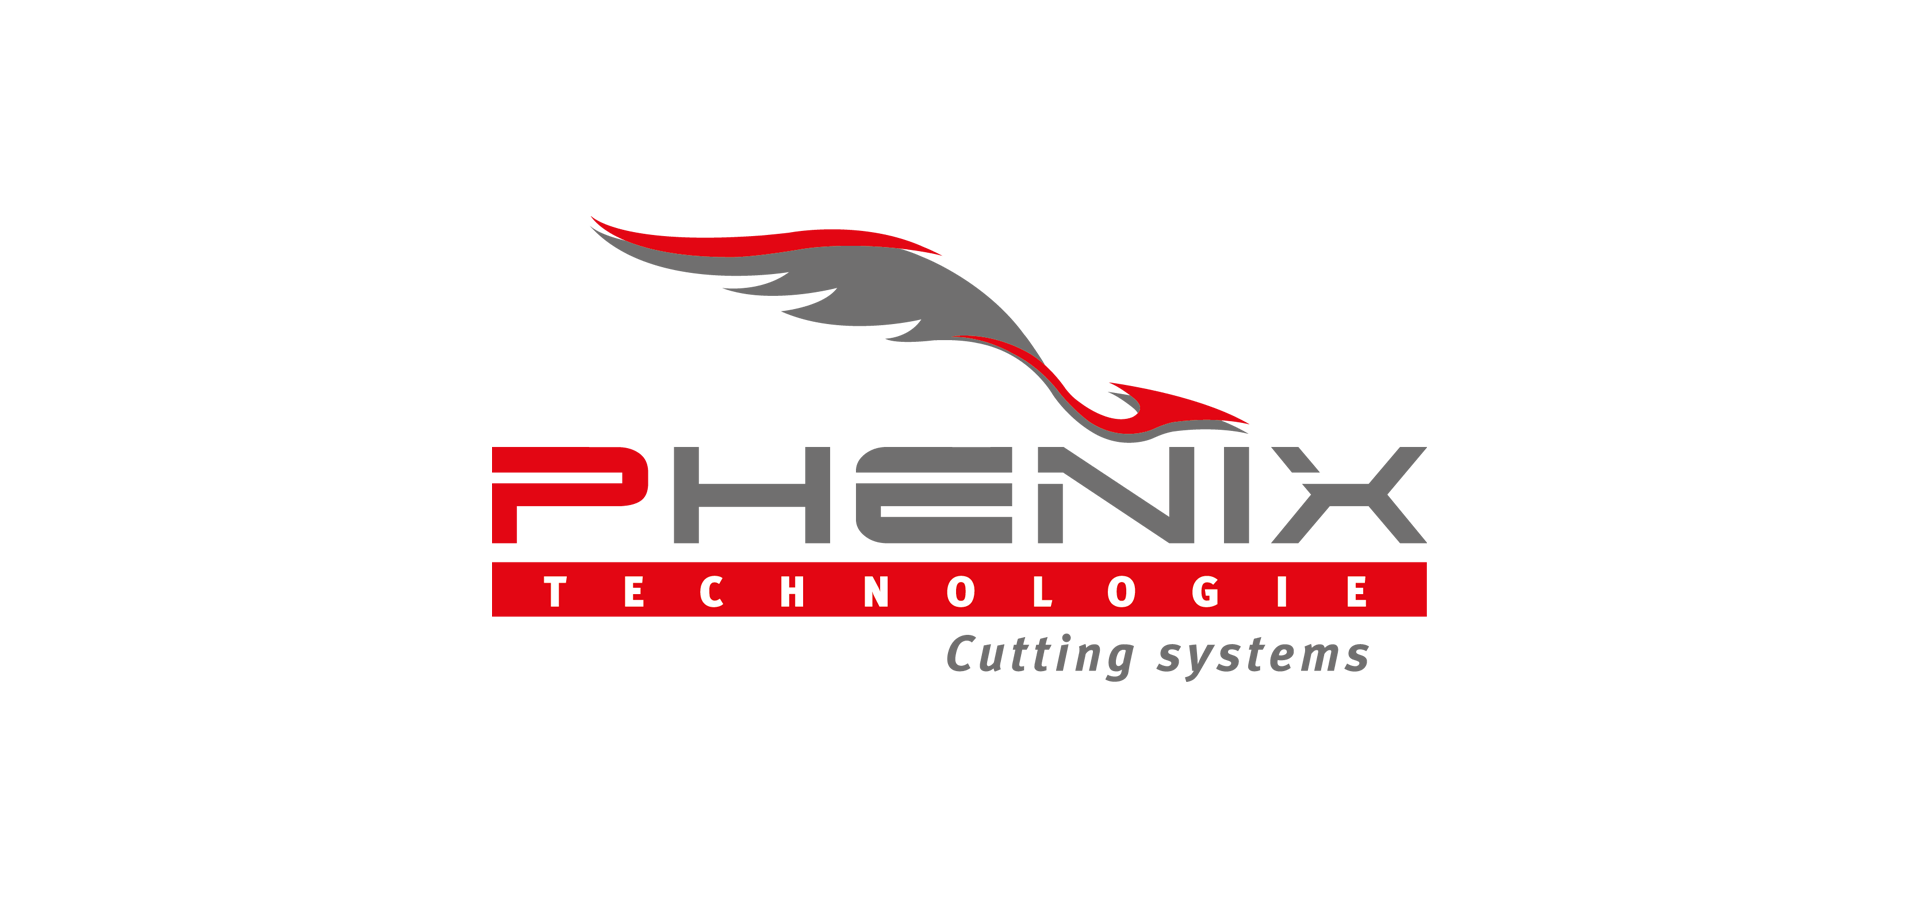 Phénix technologie | Manufacturer of cutting systems:plasma, waterjet